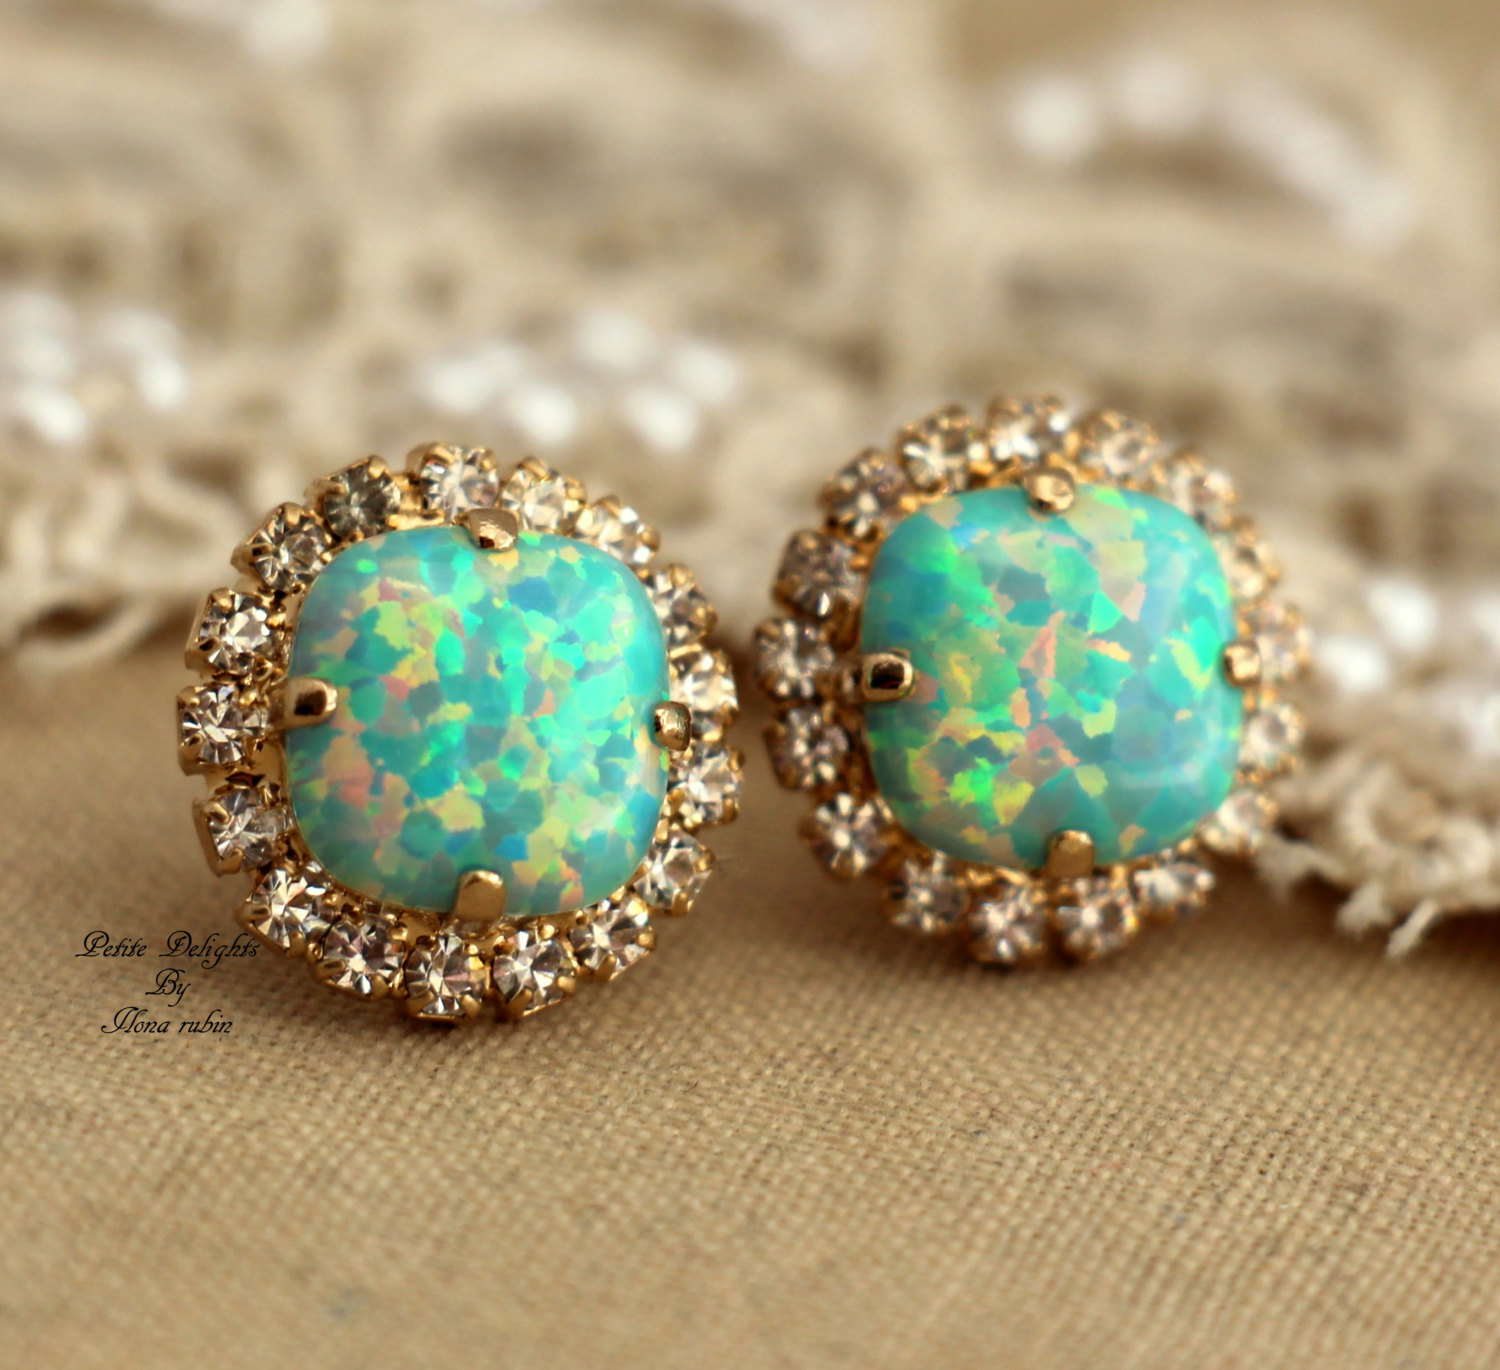 wow mint opal stud green crystal earrings gold swarovski rhinestones ebay. Black Bedroom Furniture Sets. Home Design Ideas